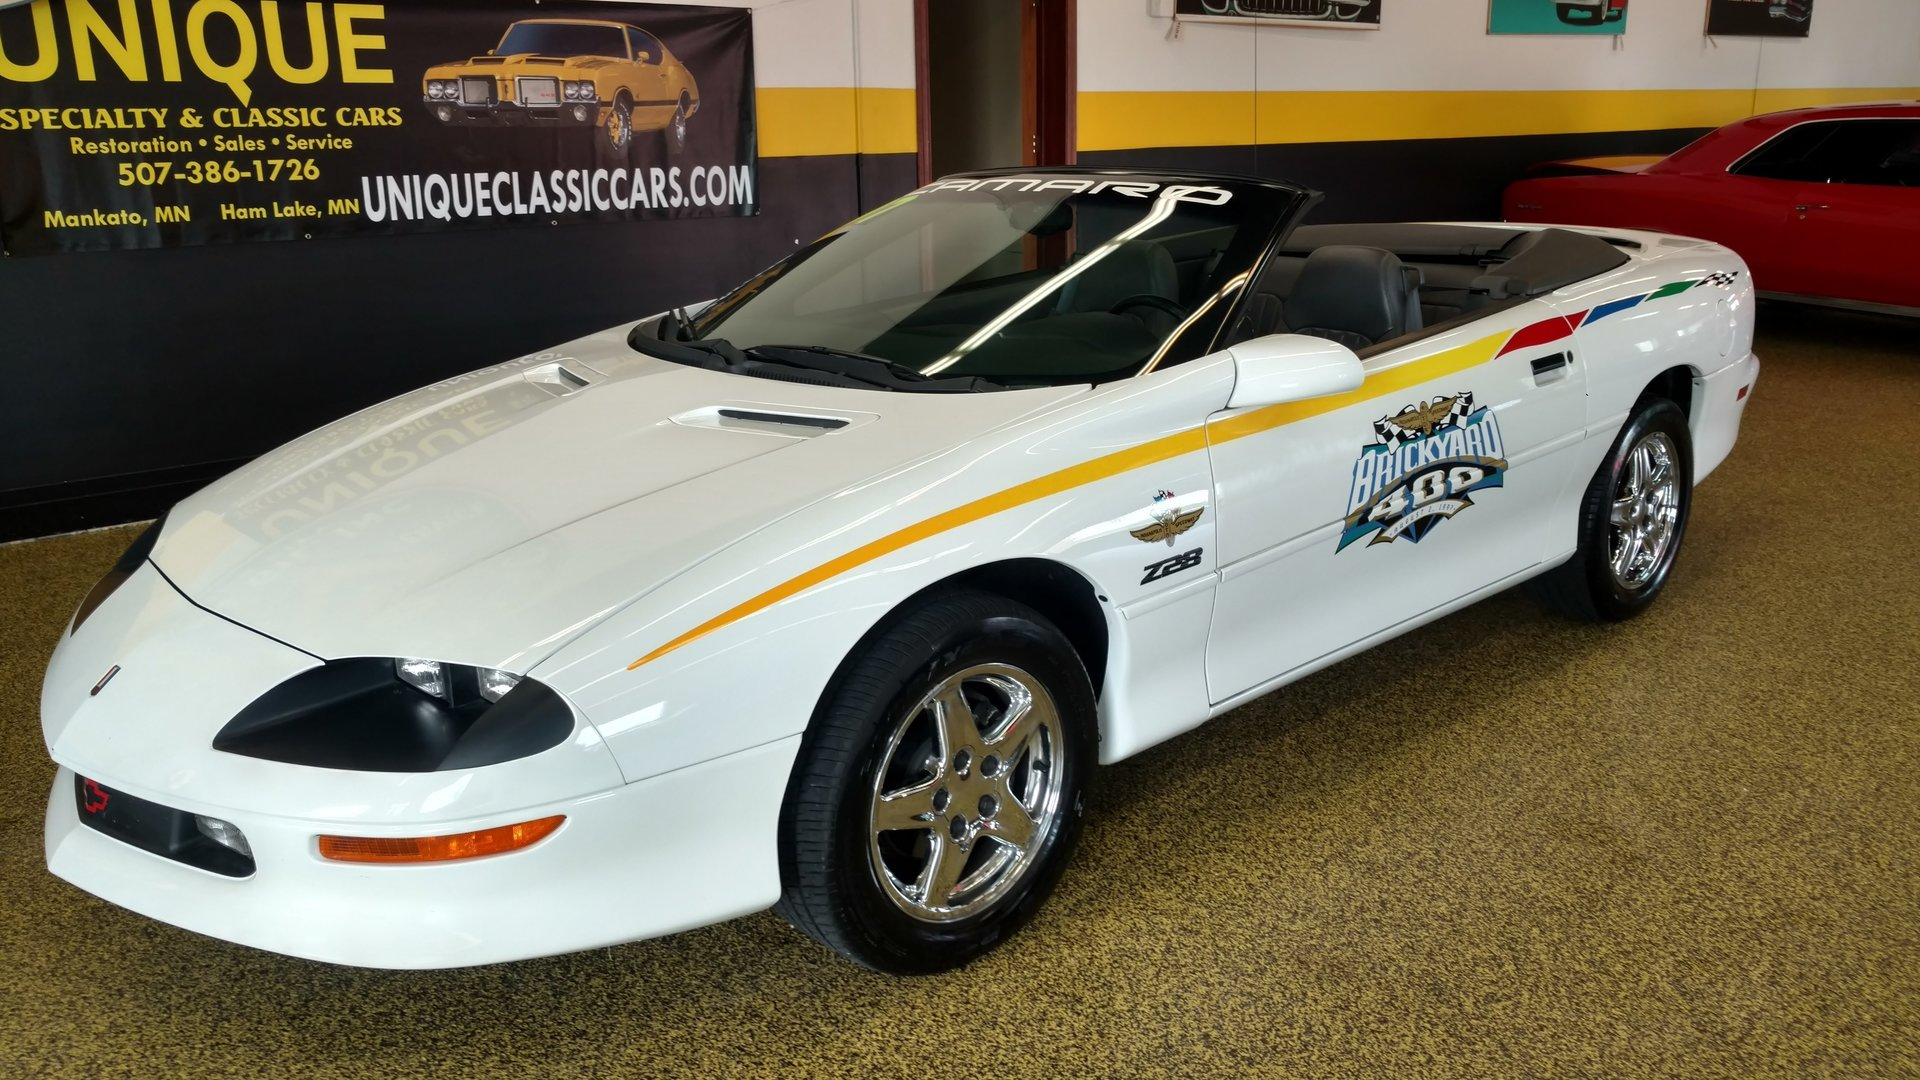 1997 Chevrolet Camaro | Unique Specialty & Classics